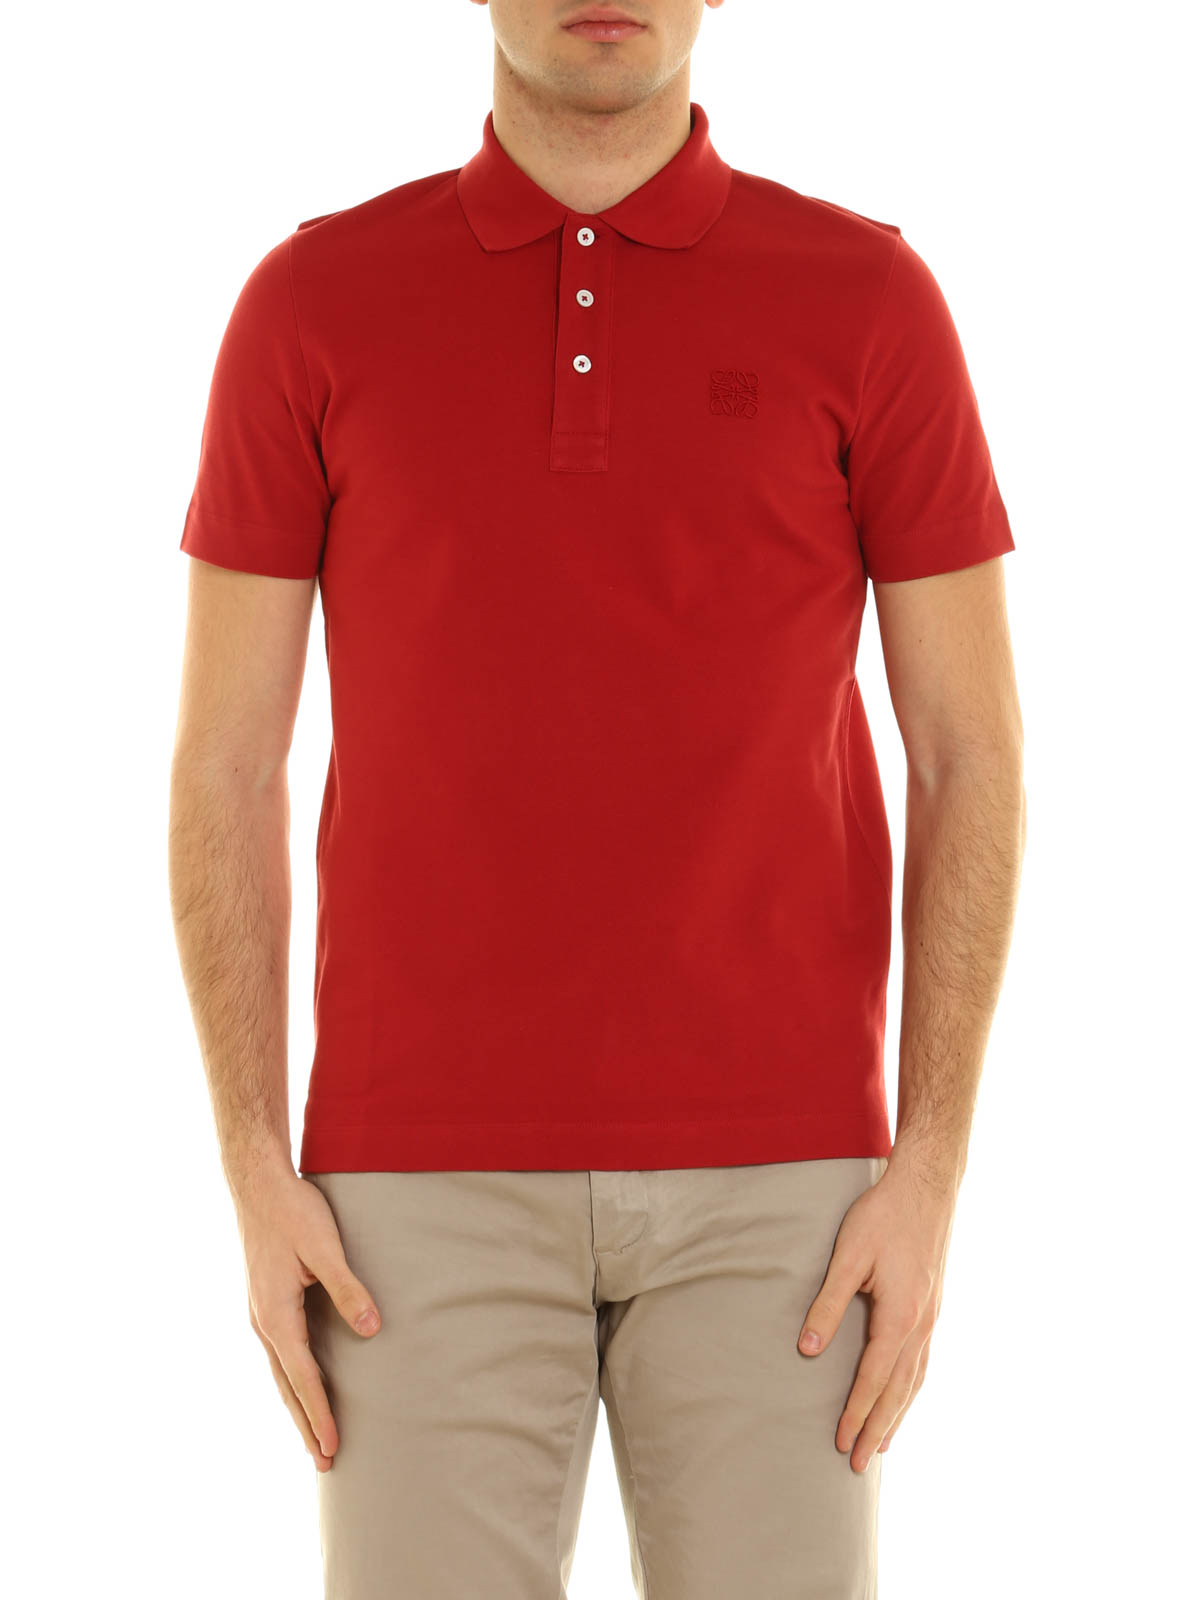 Embroidered logo polo shirt by loewe polo shirts ikrix for Embroidered polo shirts online